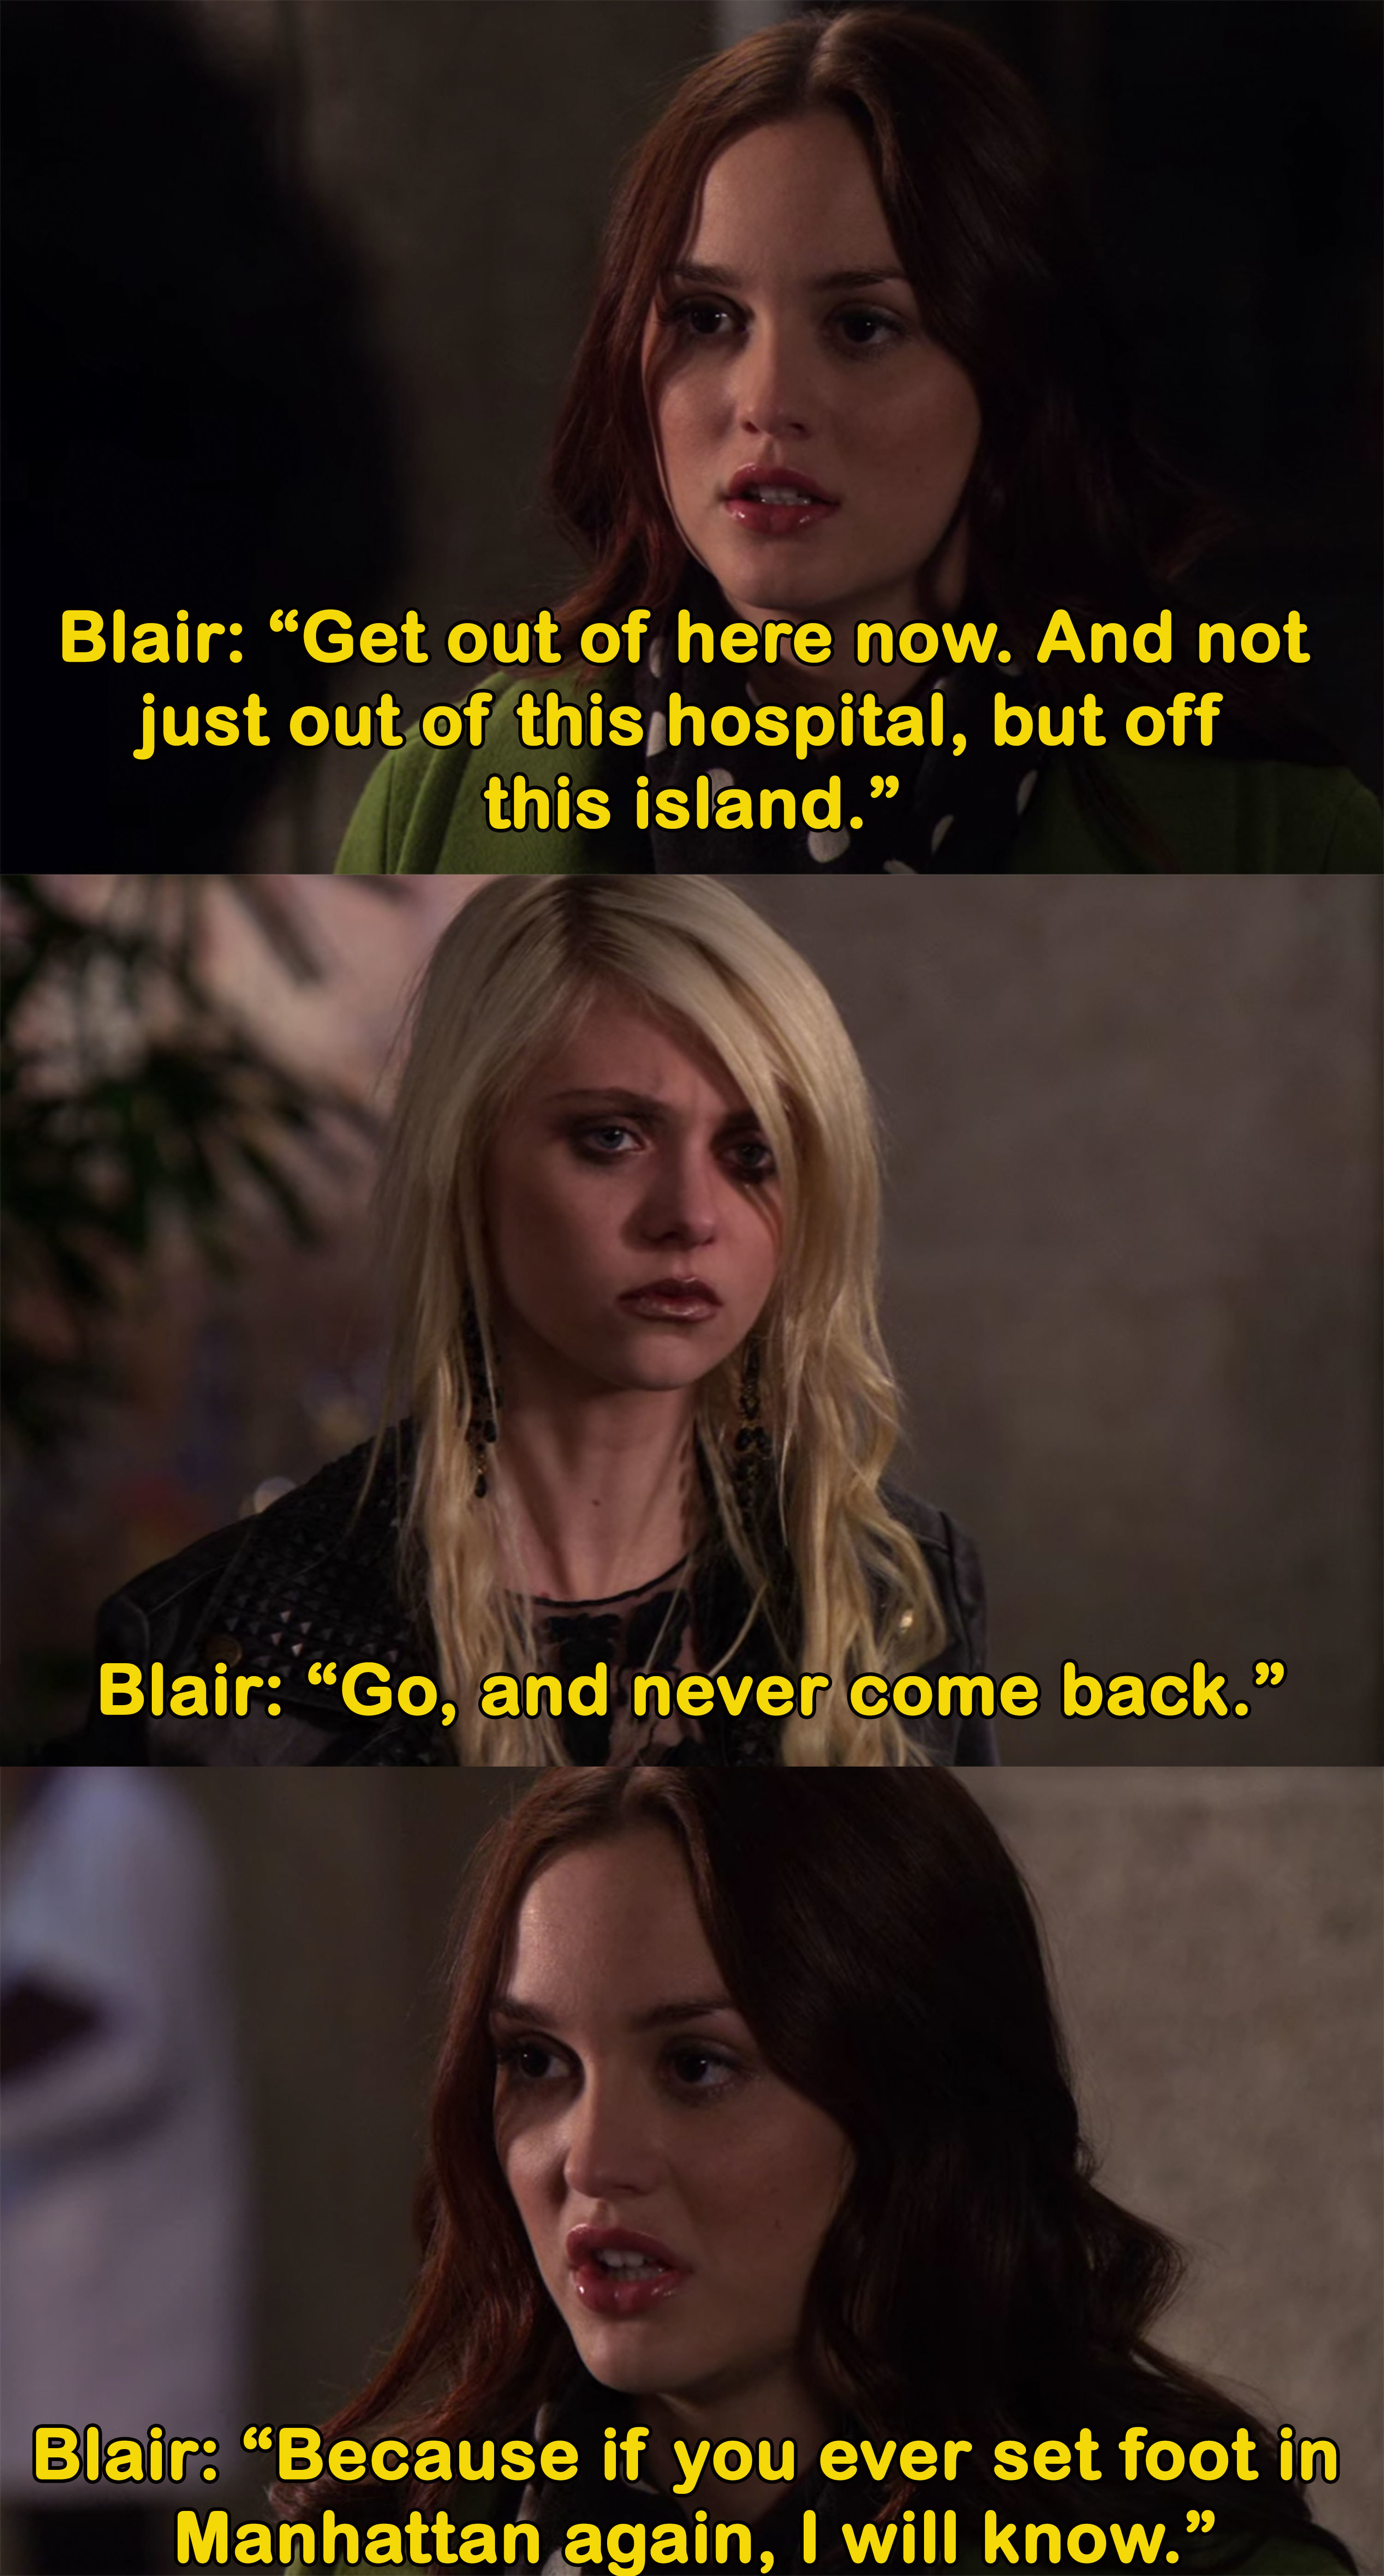 Blair tells Jenny to leave and never come back